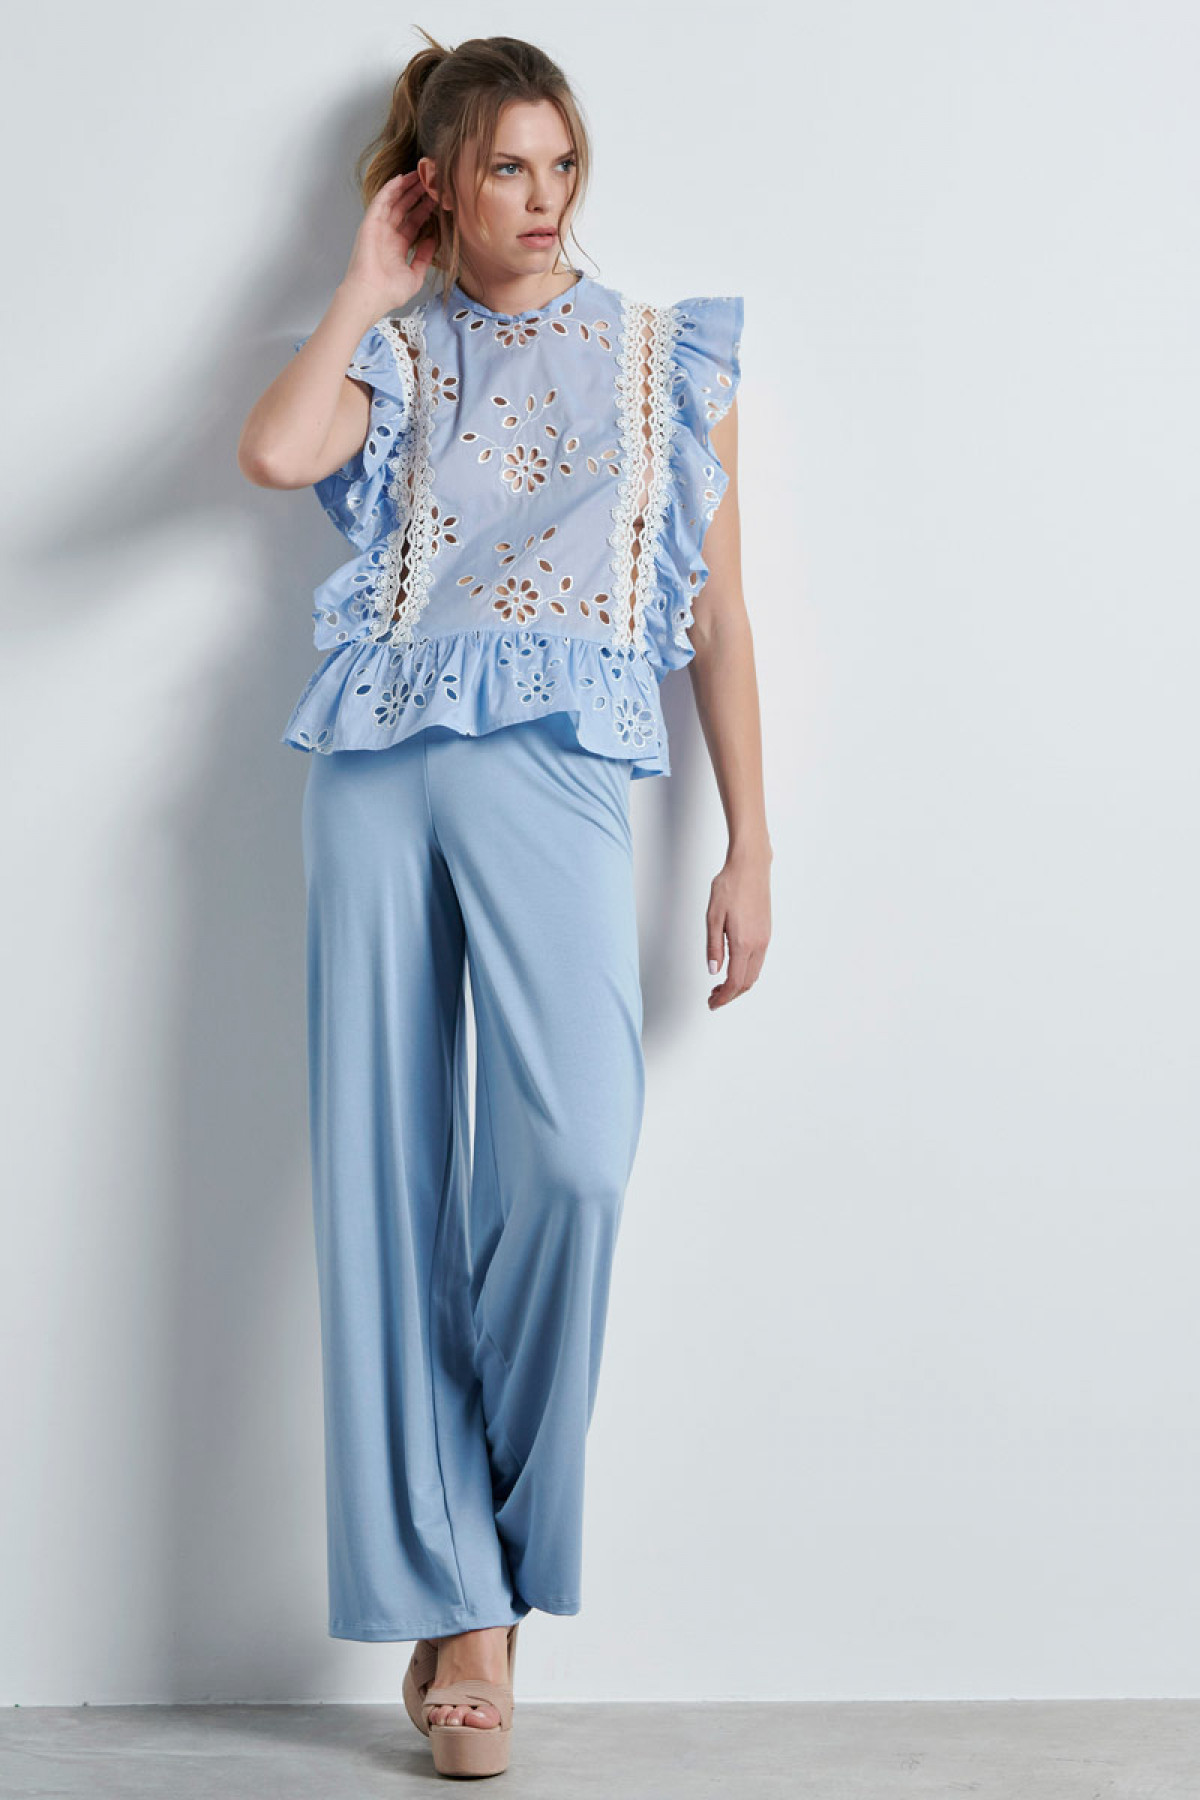 BRODERIE RUFFLE TOP IN BABY BLUE